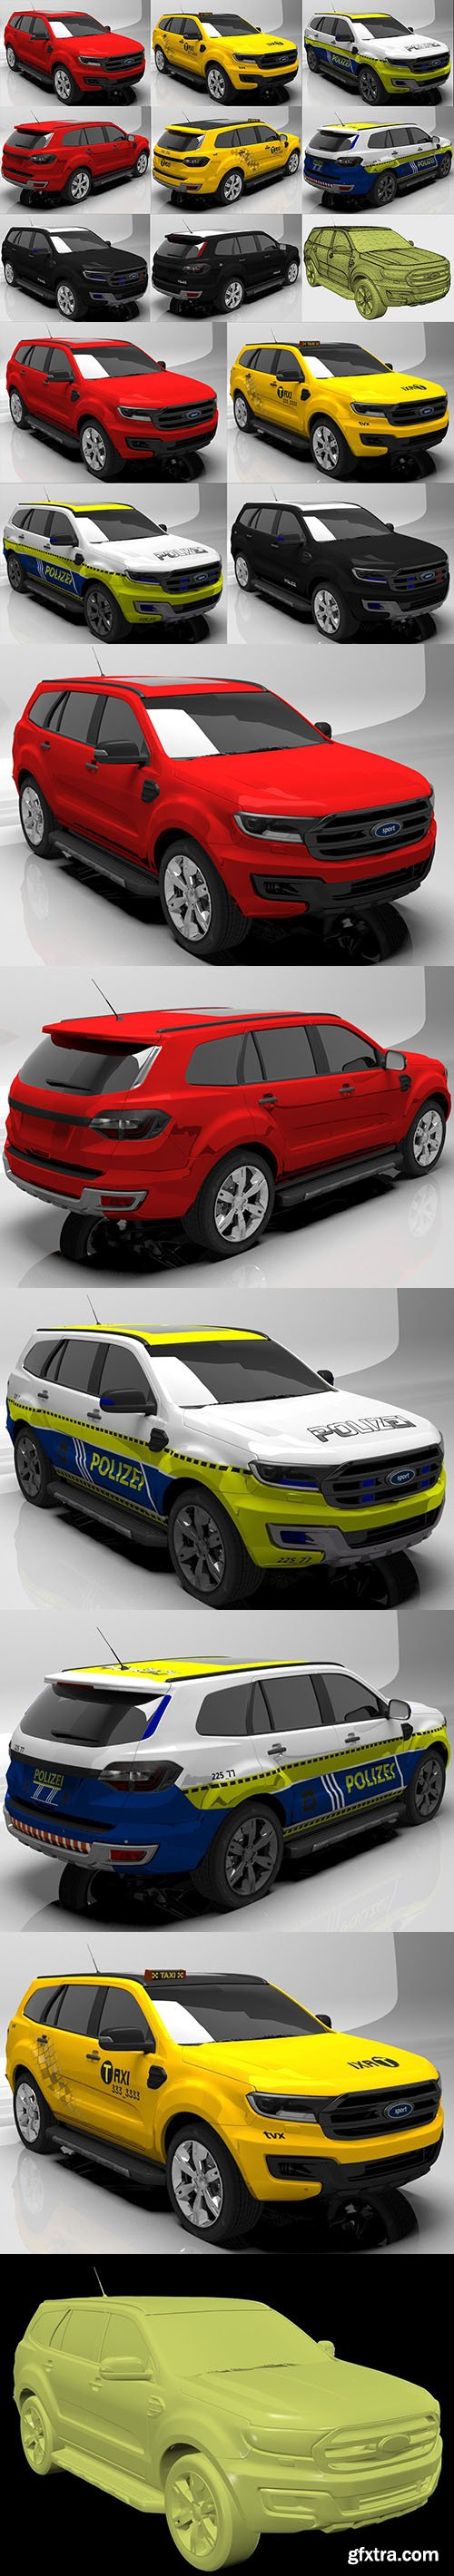 Cgtrader - Sport taxi police 3D model